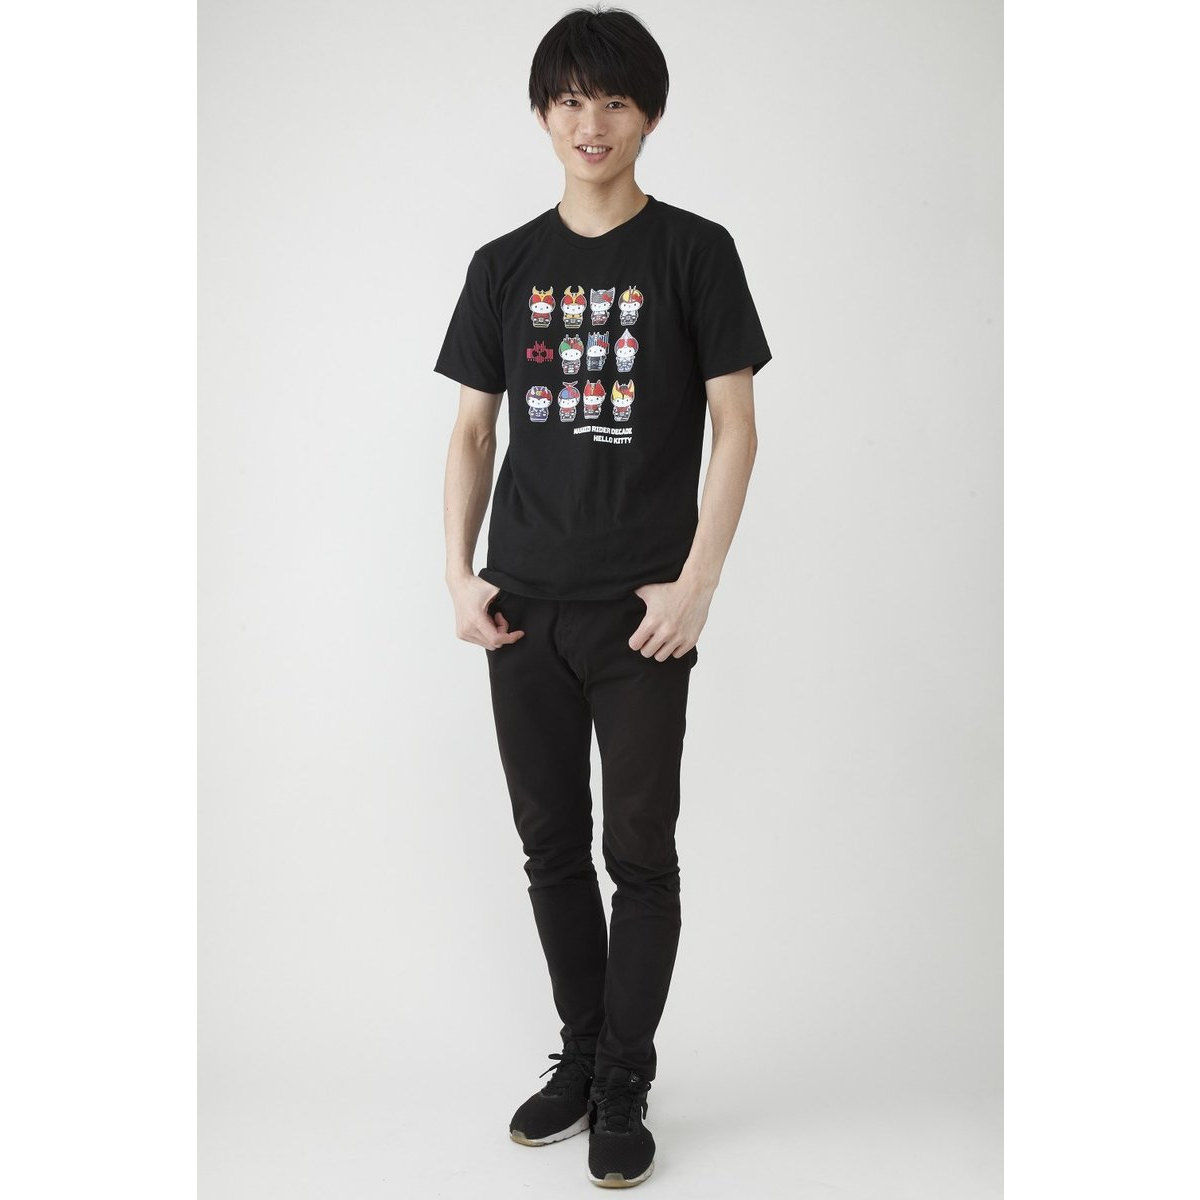 Full-color Printed T-shirt—Kamen Rider Decade/Hello Kitty Collaboration